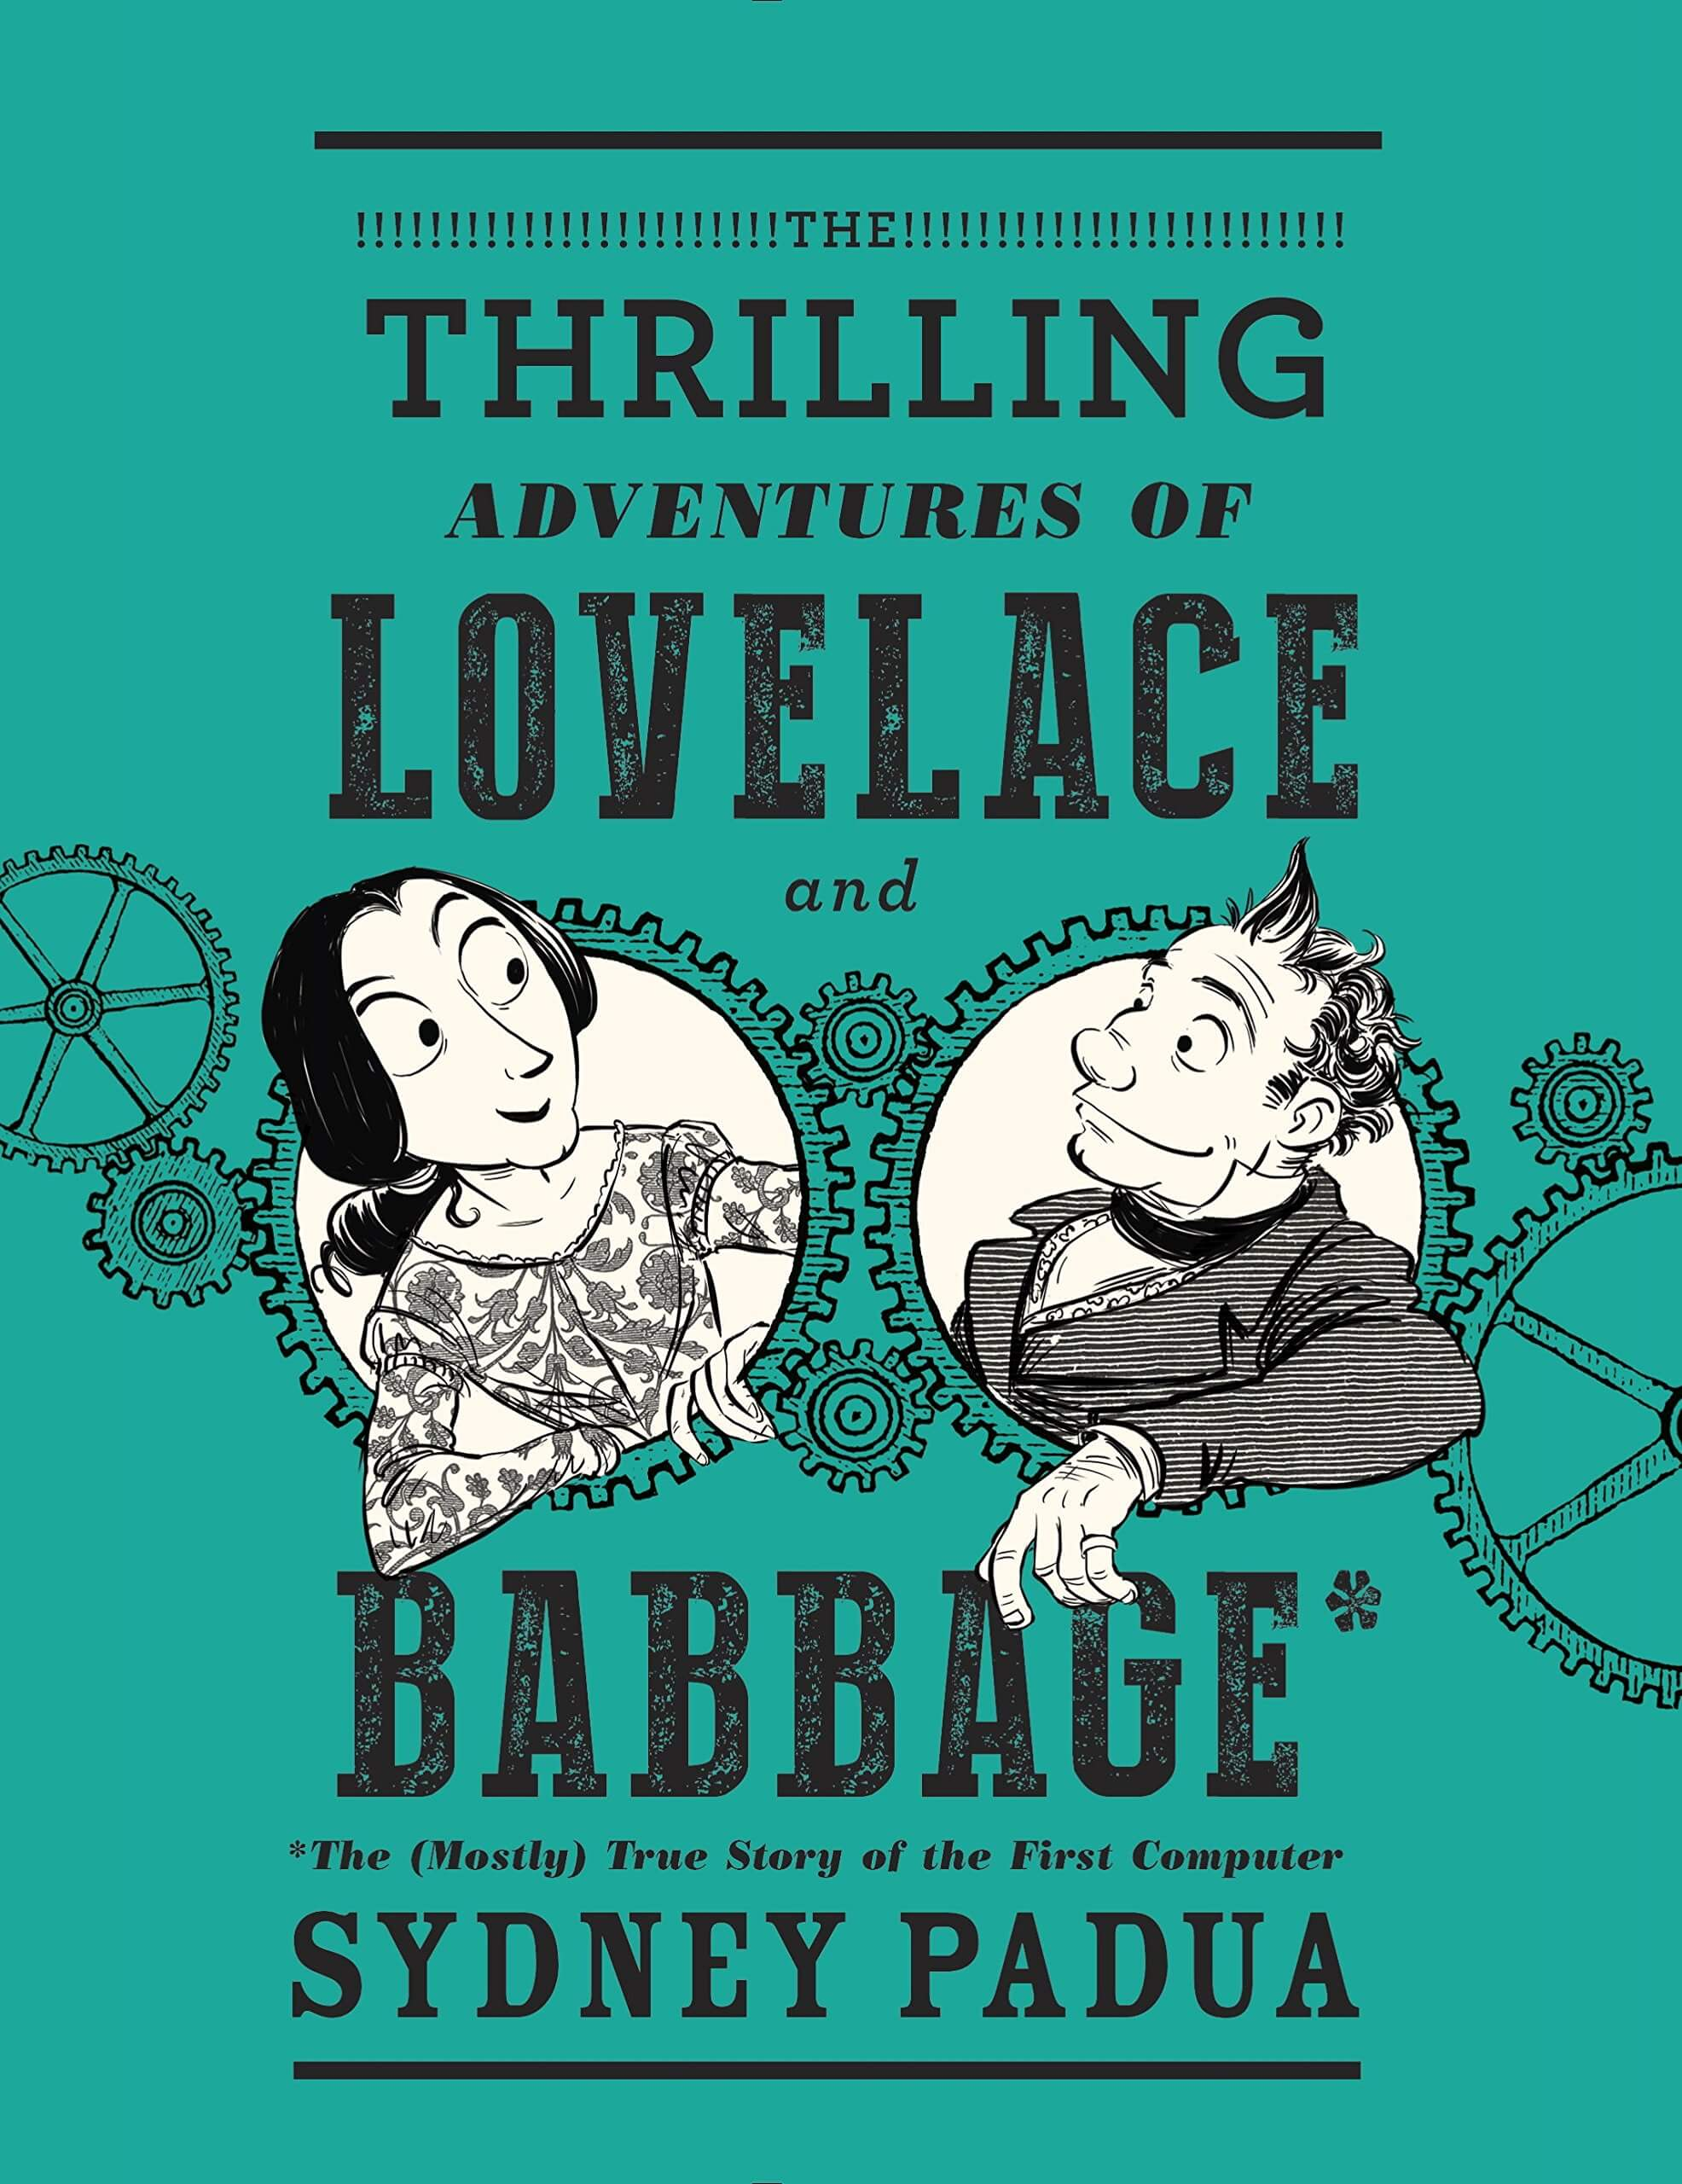 The Thrilling Adventures of Lovelace and Babbage Book Cover Image